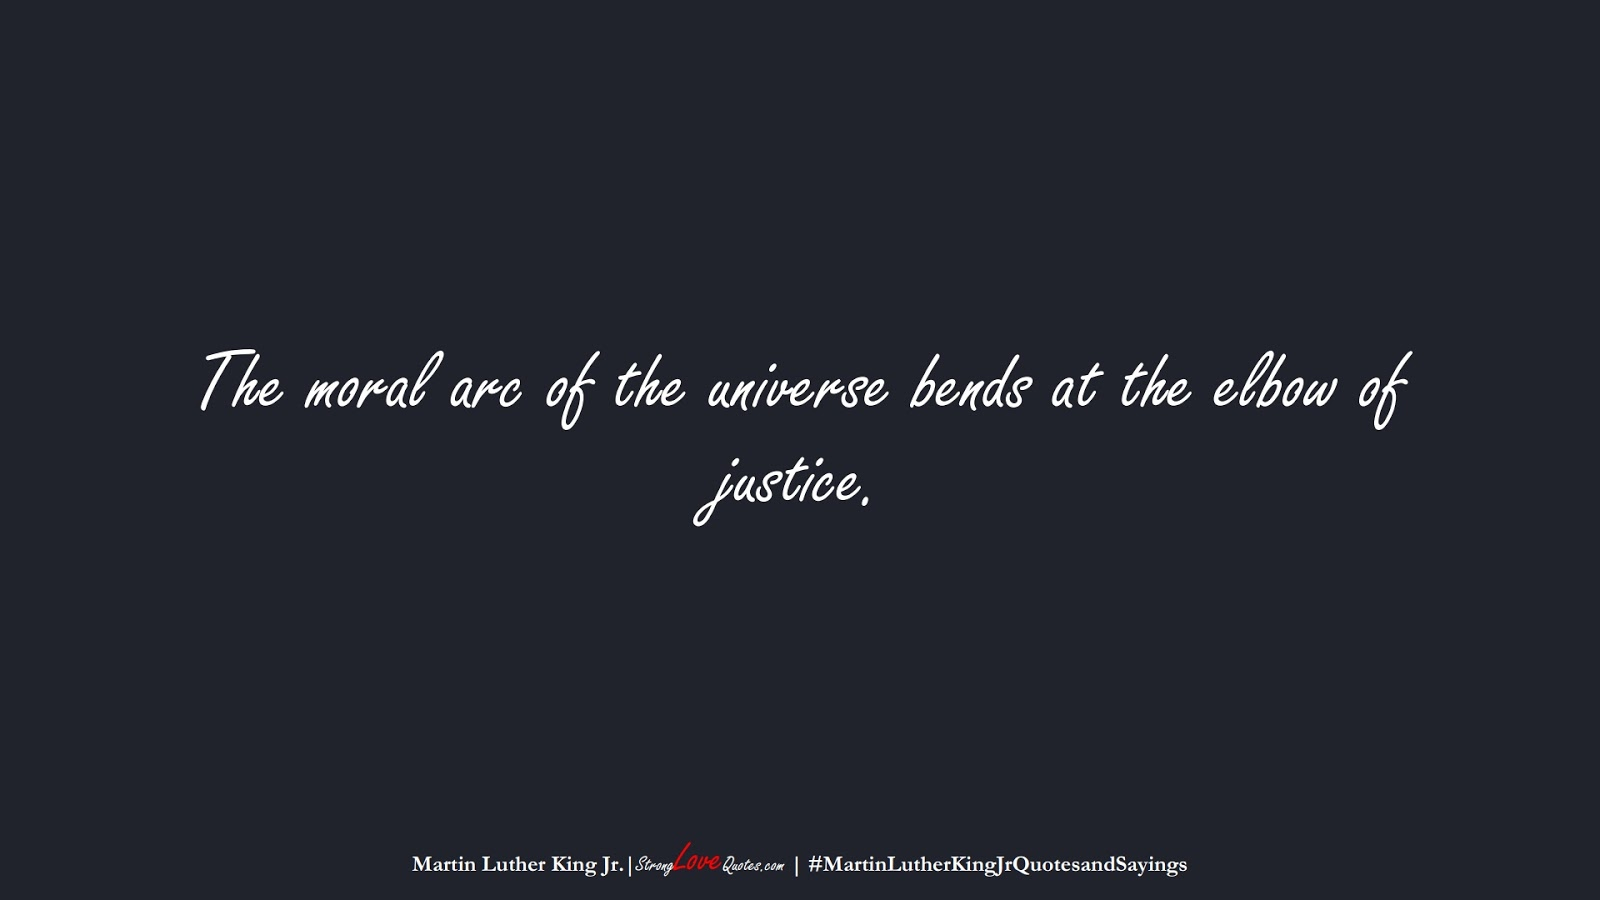 The moral arc of the universe bends at the elbow of justice. (Martin Luther King Jr.);  #MartinLutherKingJrQuotesandSayings